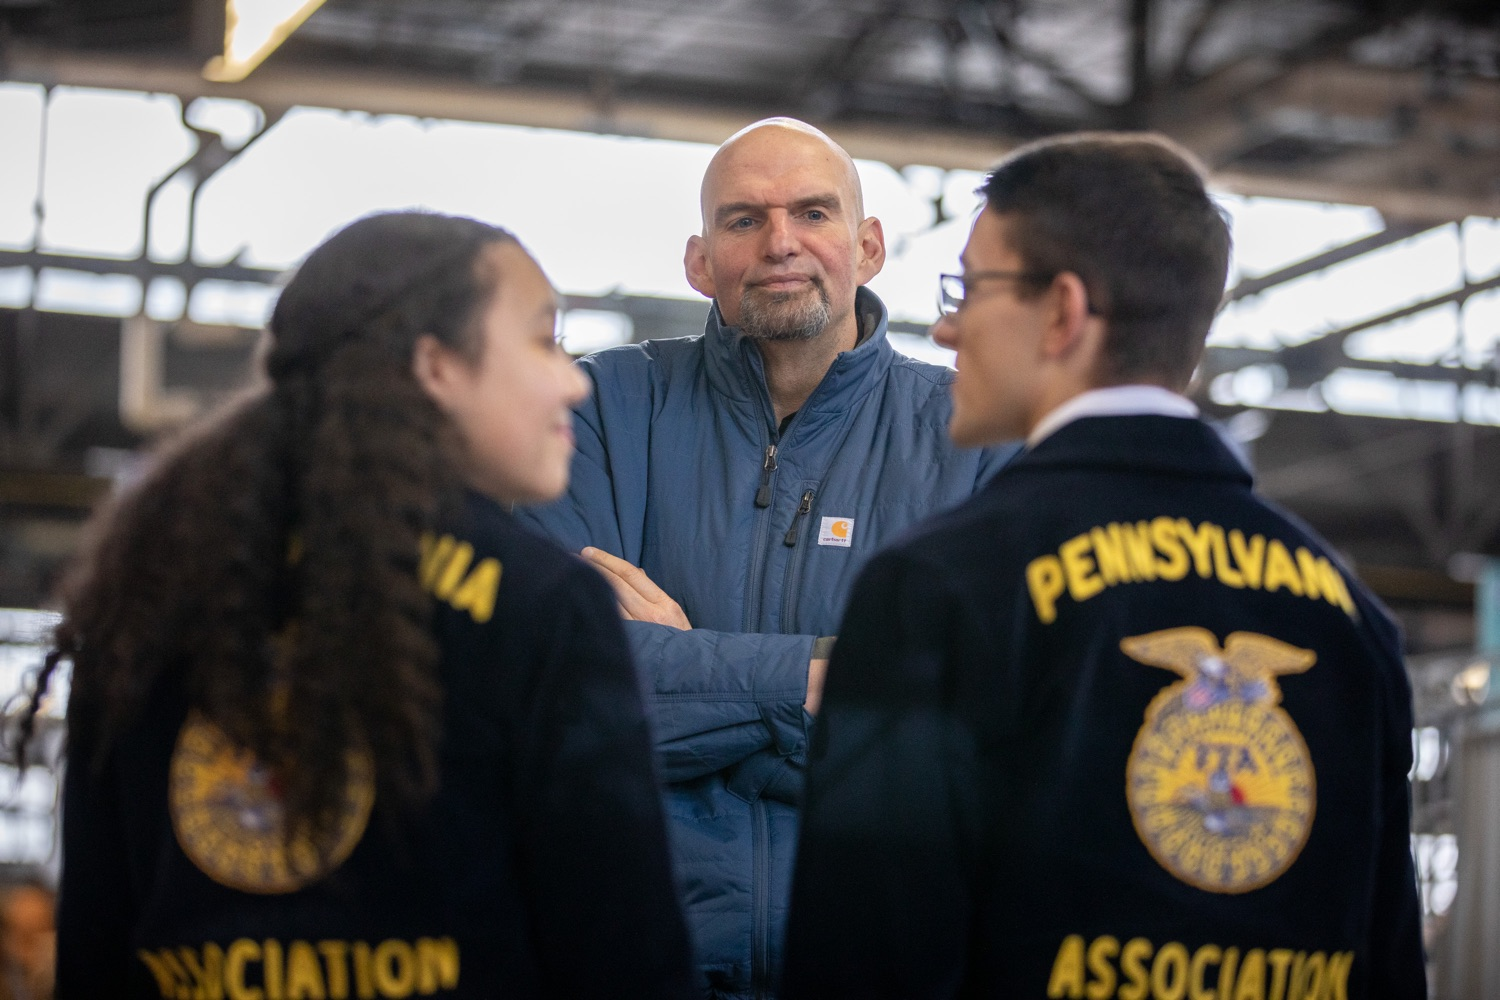 "<a href=""https://filesource.wostreaming.net/commonwealthofpa/photo/17646_agric_butter_sculpture_dz_013.jpg"" target=""_blank"">⇣ Download Photo<br></a>Lt. Governor John Fetterman speaking to Pennsylvania FFA members.  Lt. Governor John Fetterman and Secretary of Agriculture Russell Redding today unveiled the 2020 Pennsylvania Farm Show butter sculpture, carved from a half-ton of butter depicting three of Pennsylvanias beloved professional sports mascots: Philadelphia Flyers Gritty, Philadelphia Eagles Swoop, and Pittsburgh Steelers Steely McBeam celebrating with a spread of Pennsylvania dairy products. The sculpture, a long-time Farm Show staple, encourages Pennsylvanians to be a fan of Pennsylvania dairy and give a cheer to the more than 6,200 dairy farmers in the commonwealth.  Harrisburg, PA  January 2, 2020"